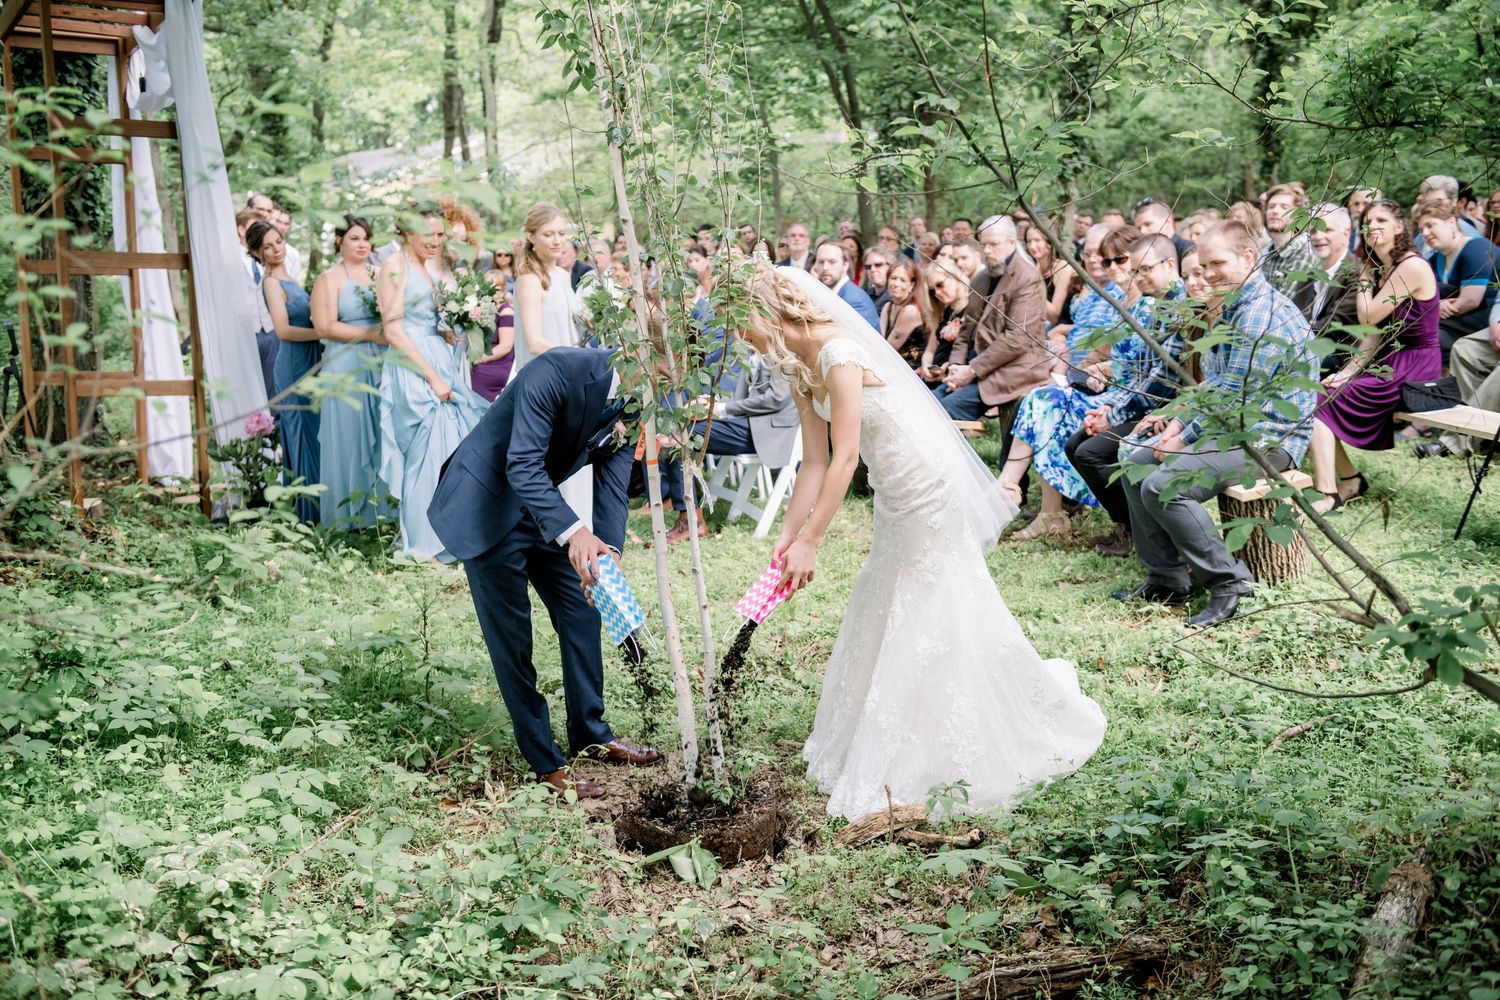 bride and groom planting a tree during their backyard farm wedding in woods